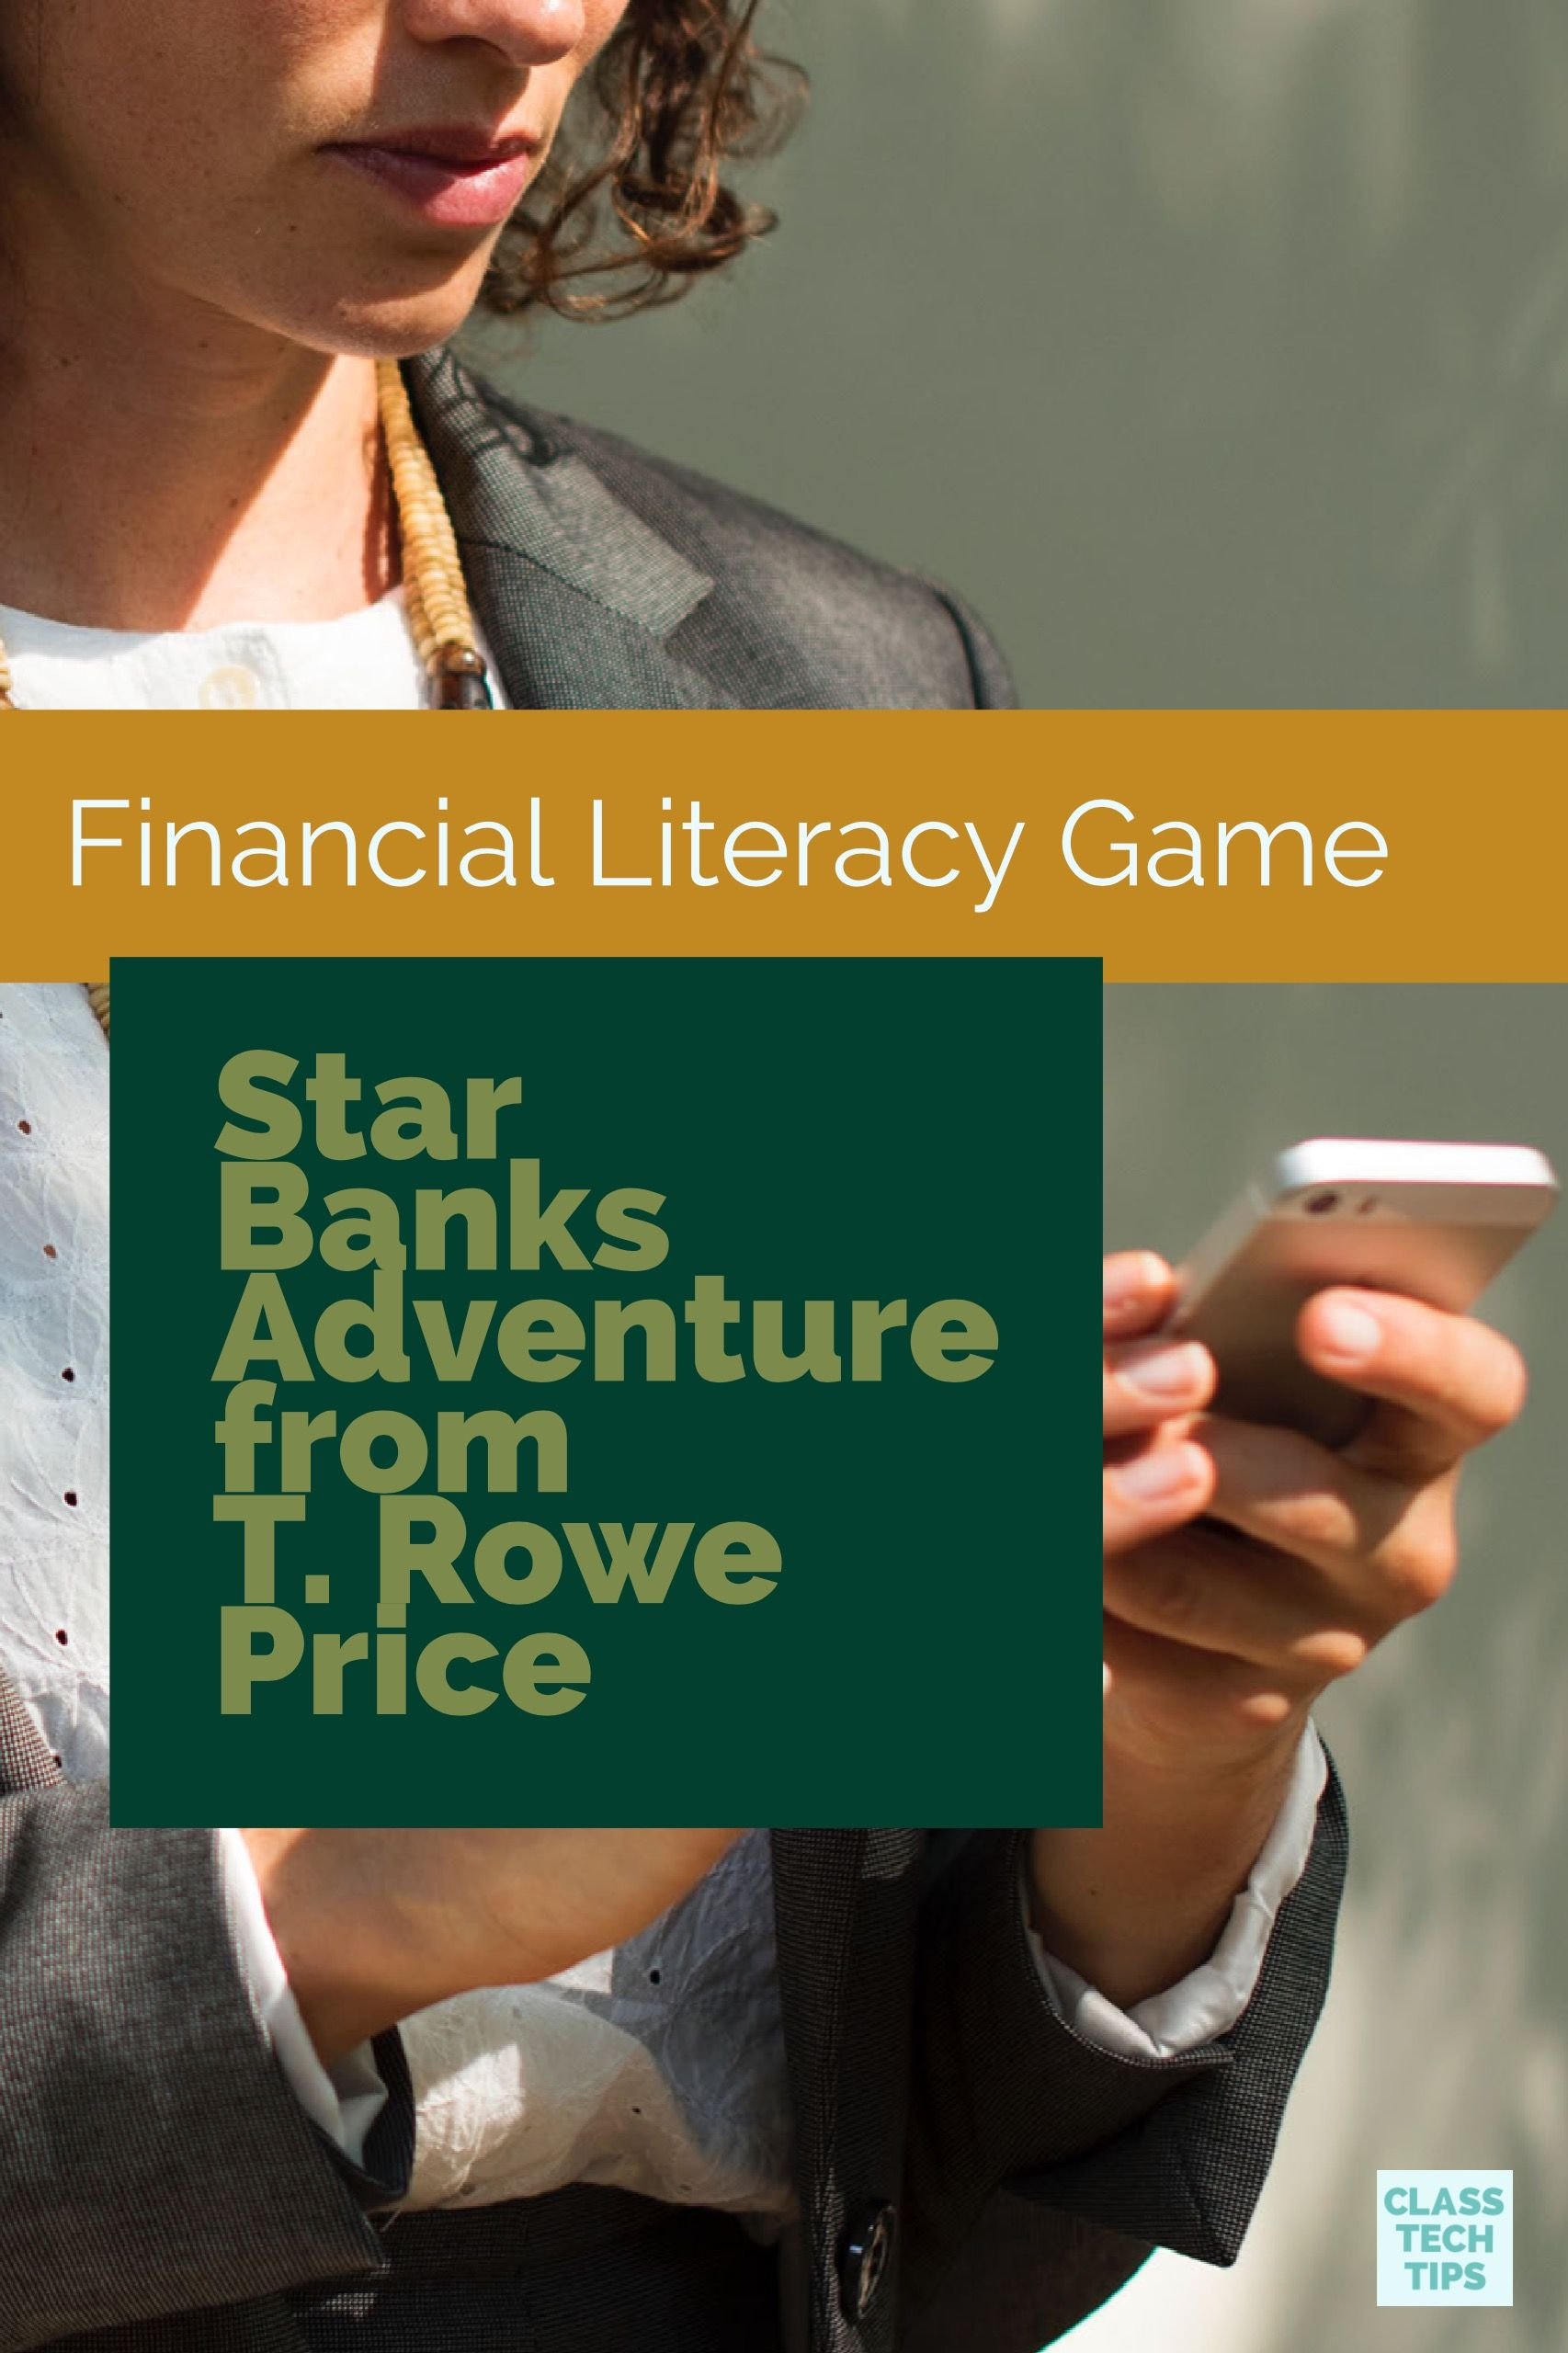 Financial Literacy Game Star Banks Adventure From T Rowe Price Class Tech Tips Financial Literacy Literacy Games Literacy